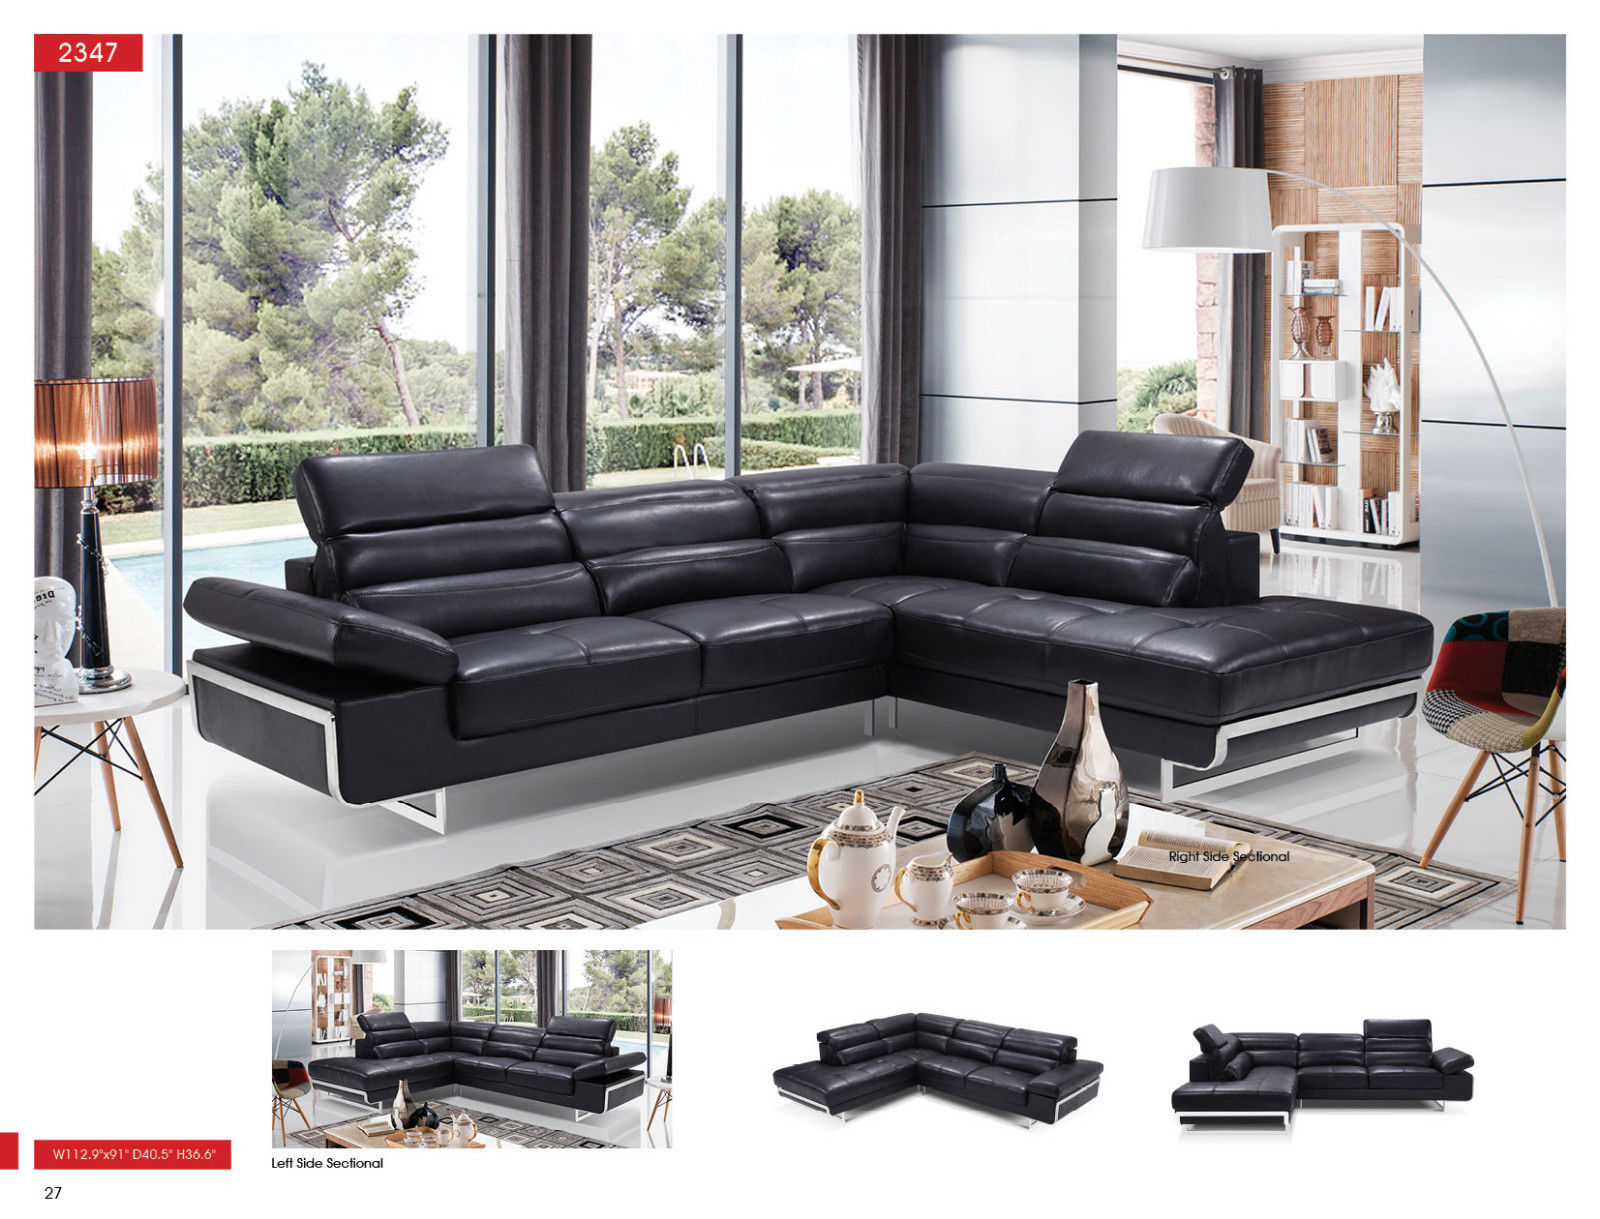 ESF 2347 Leather Sectional Sofa Black Chic Contemporary Style Right Hand Facing